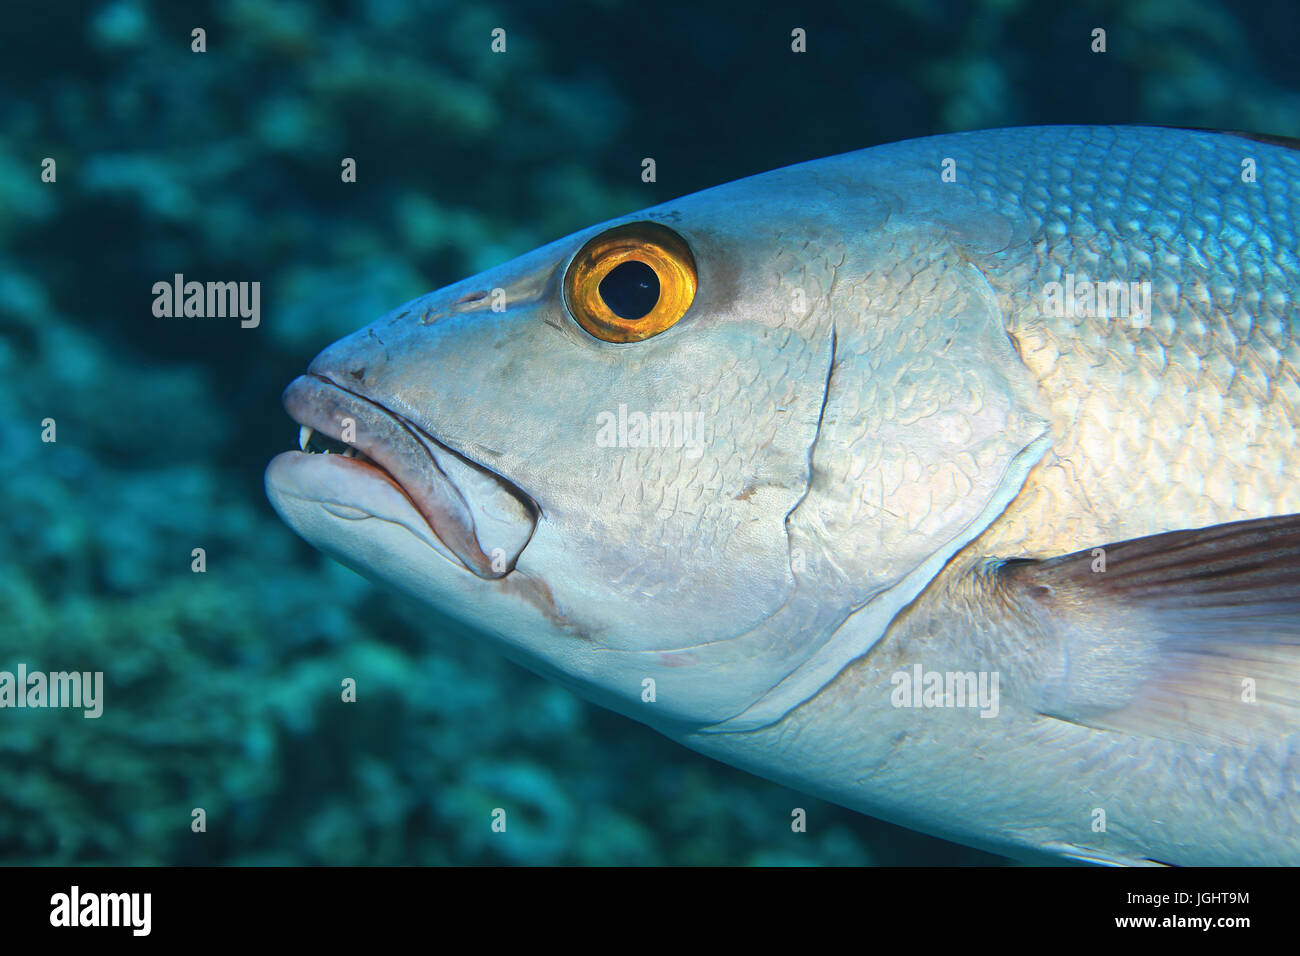 Head of two-spot red snapper fish (Lutjanus bohar) underwater in the indian ocean - Stock Image